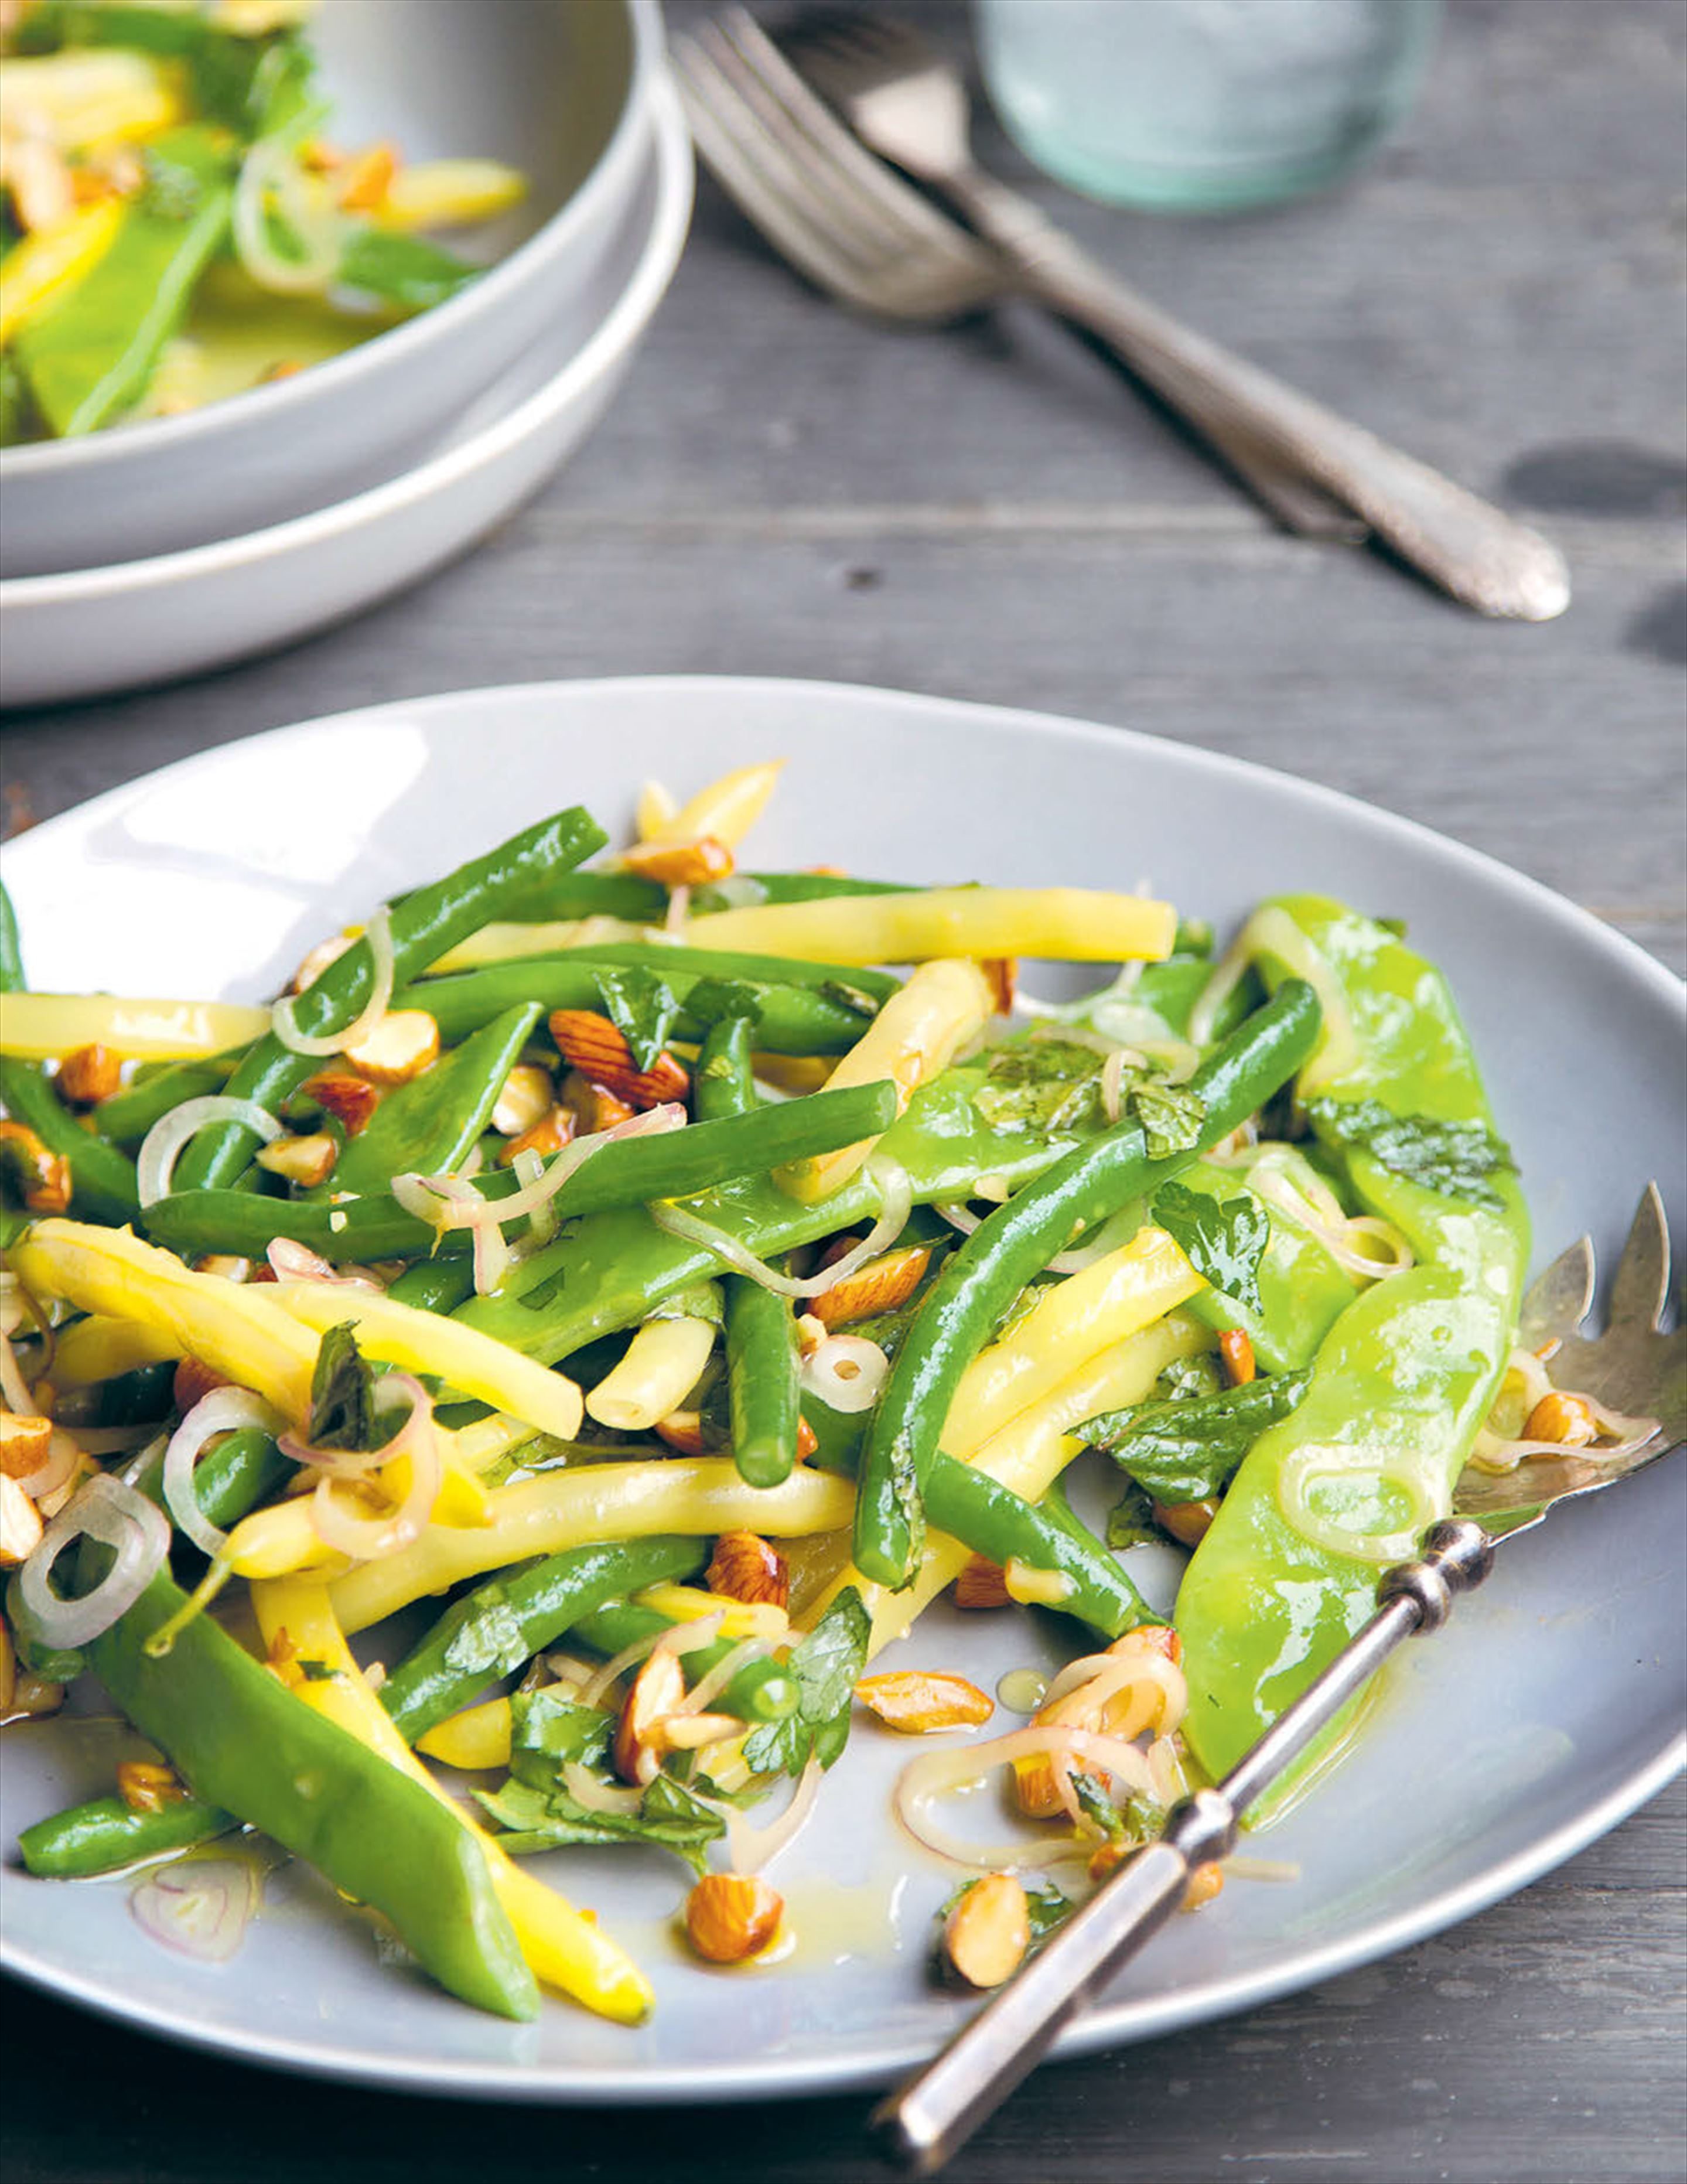 Salad of beans with honey dressing and smoked almonds